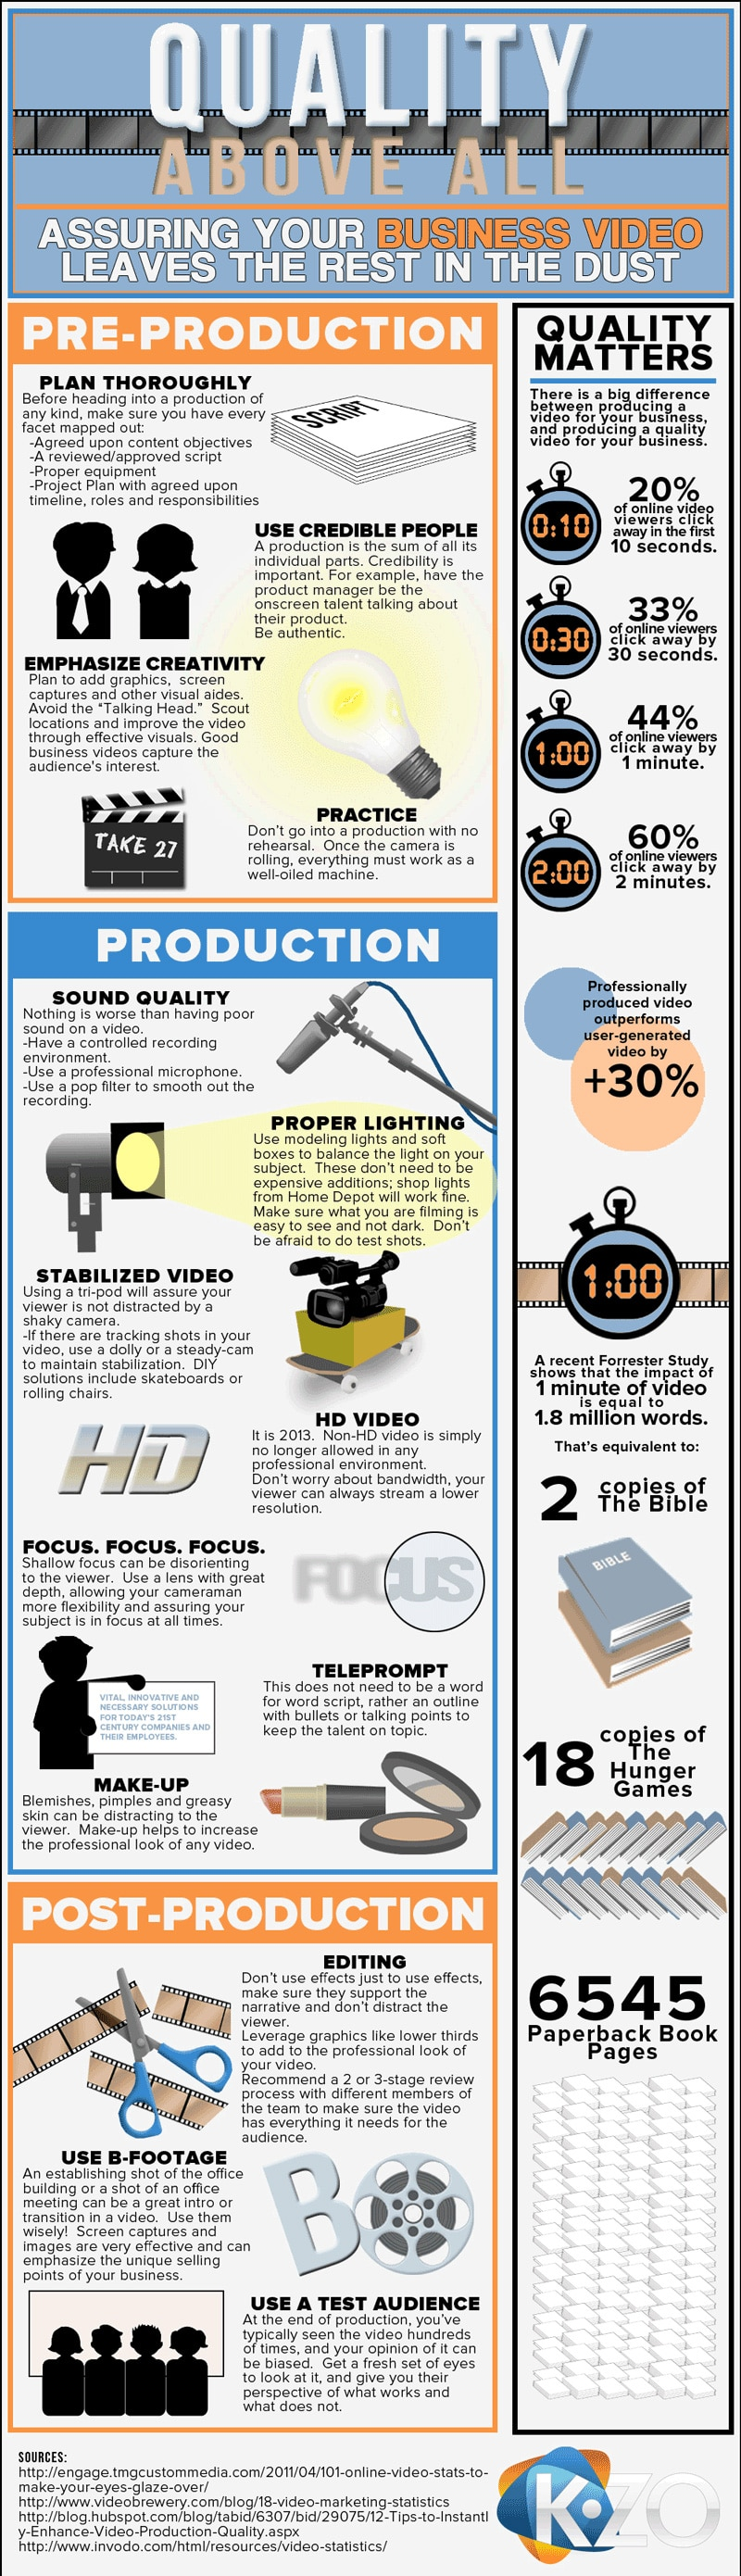 How To: Create A Successful Business Marketing Video [Infographic]